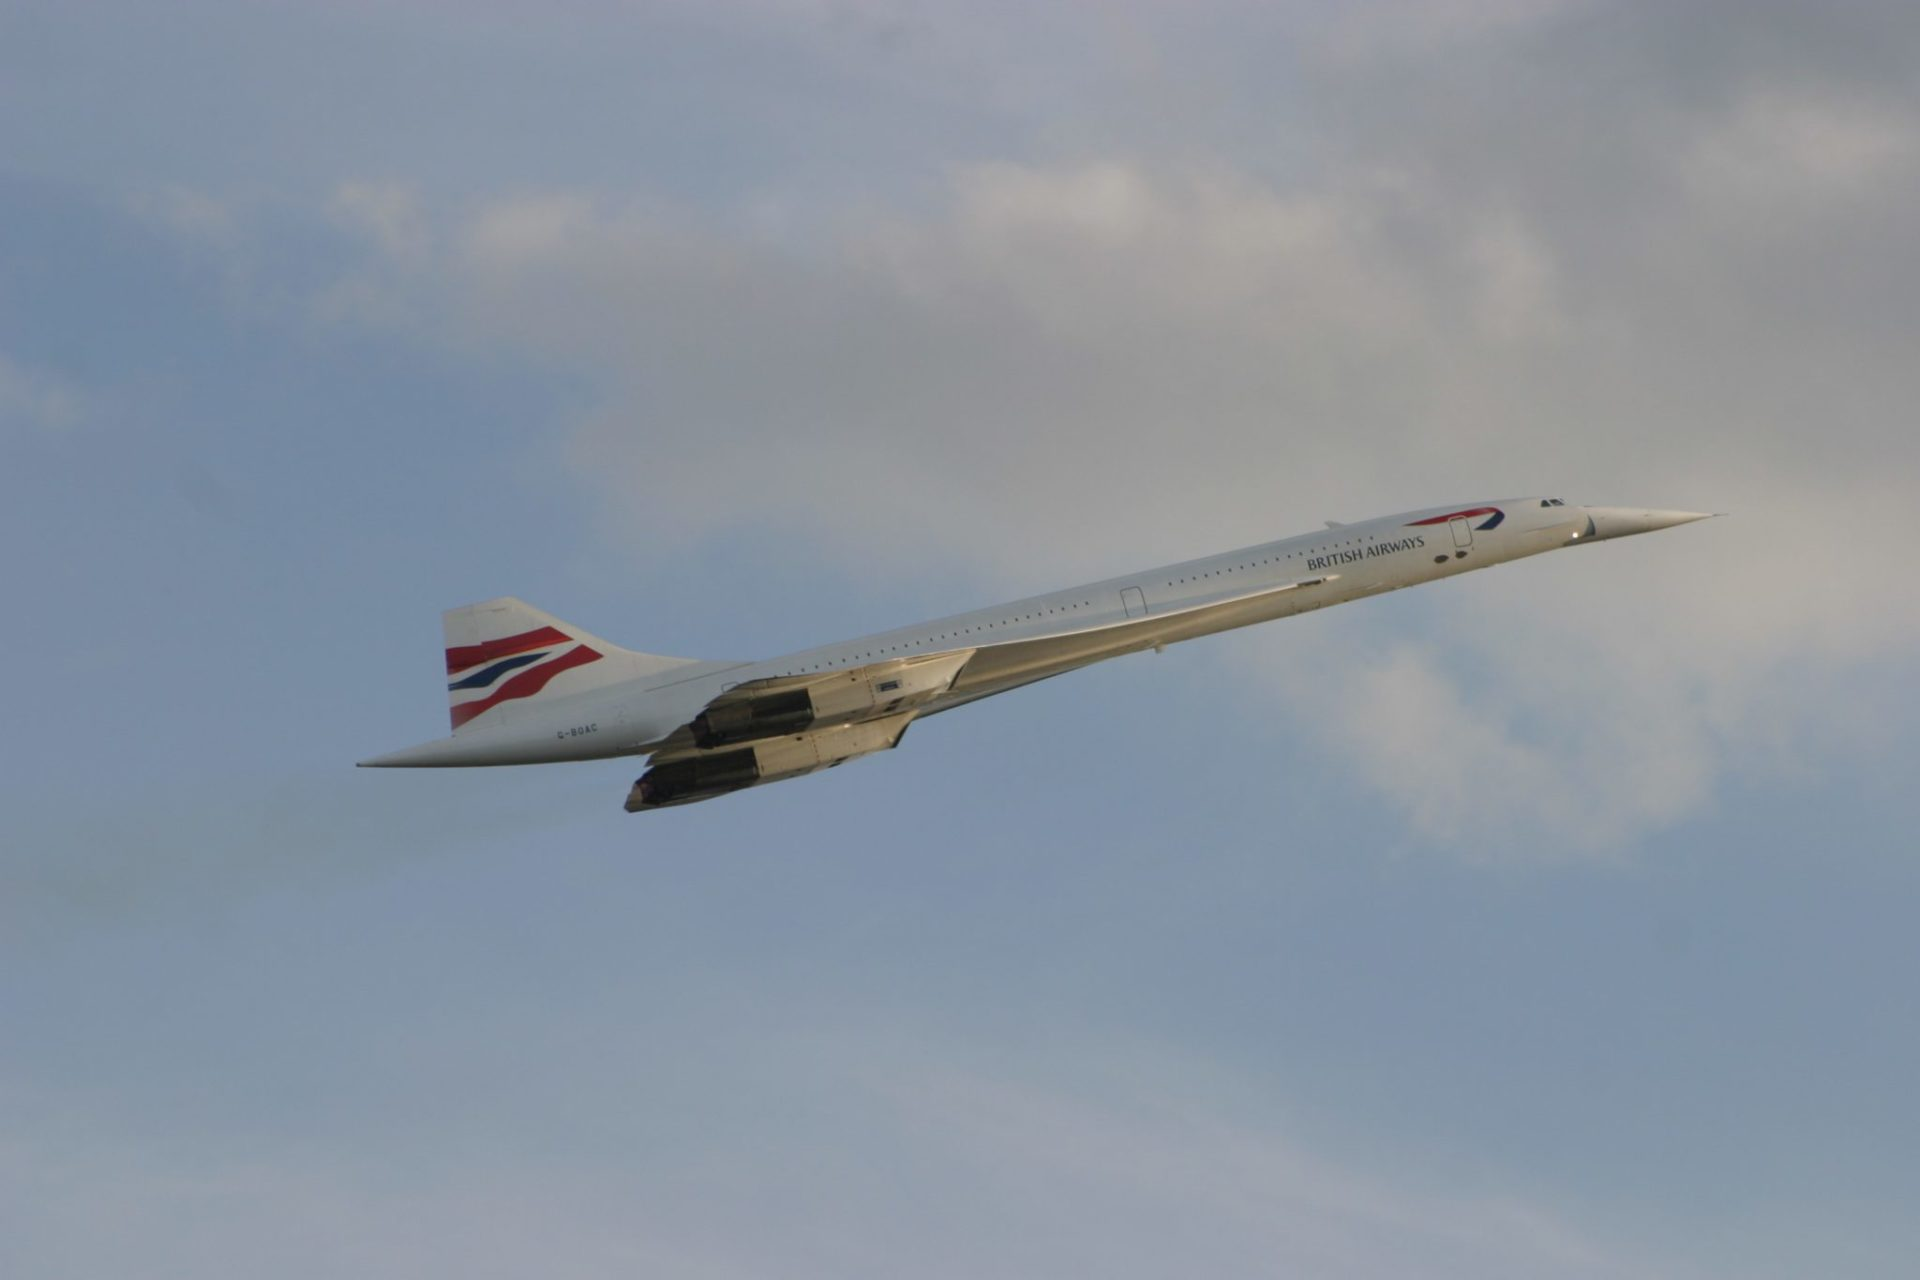 Celebrations mark 50th anniversary of the first Concorde flight